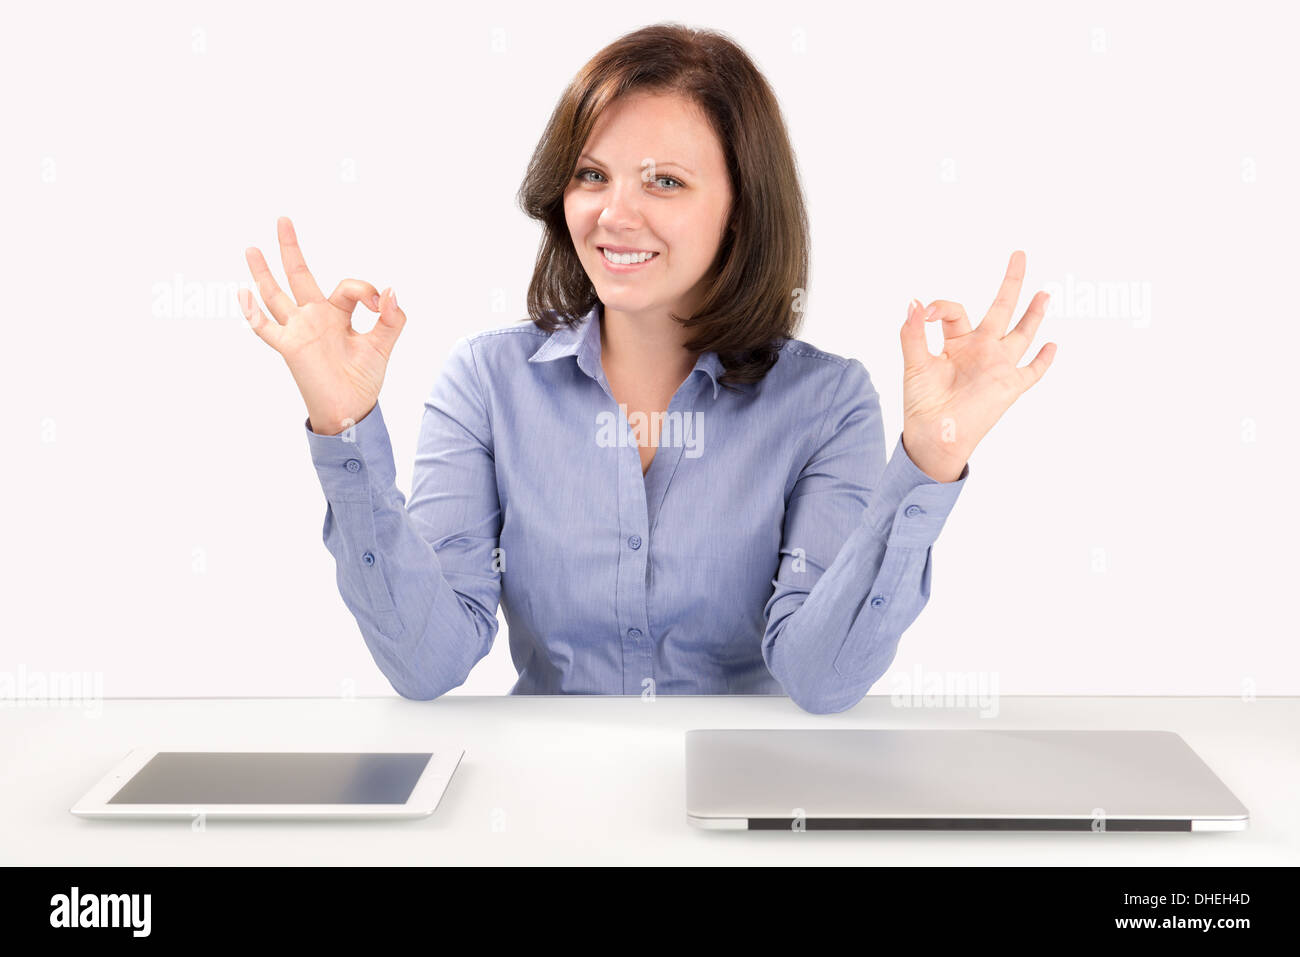 Business woman is sitting in front of a laptop and a tablet computer and showing double ok gesture - Stock Image